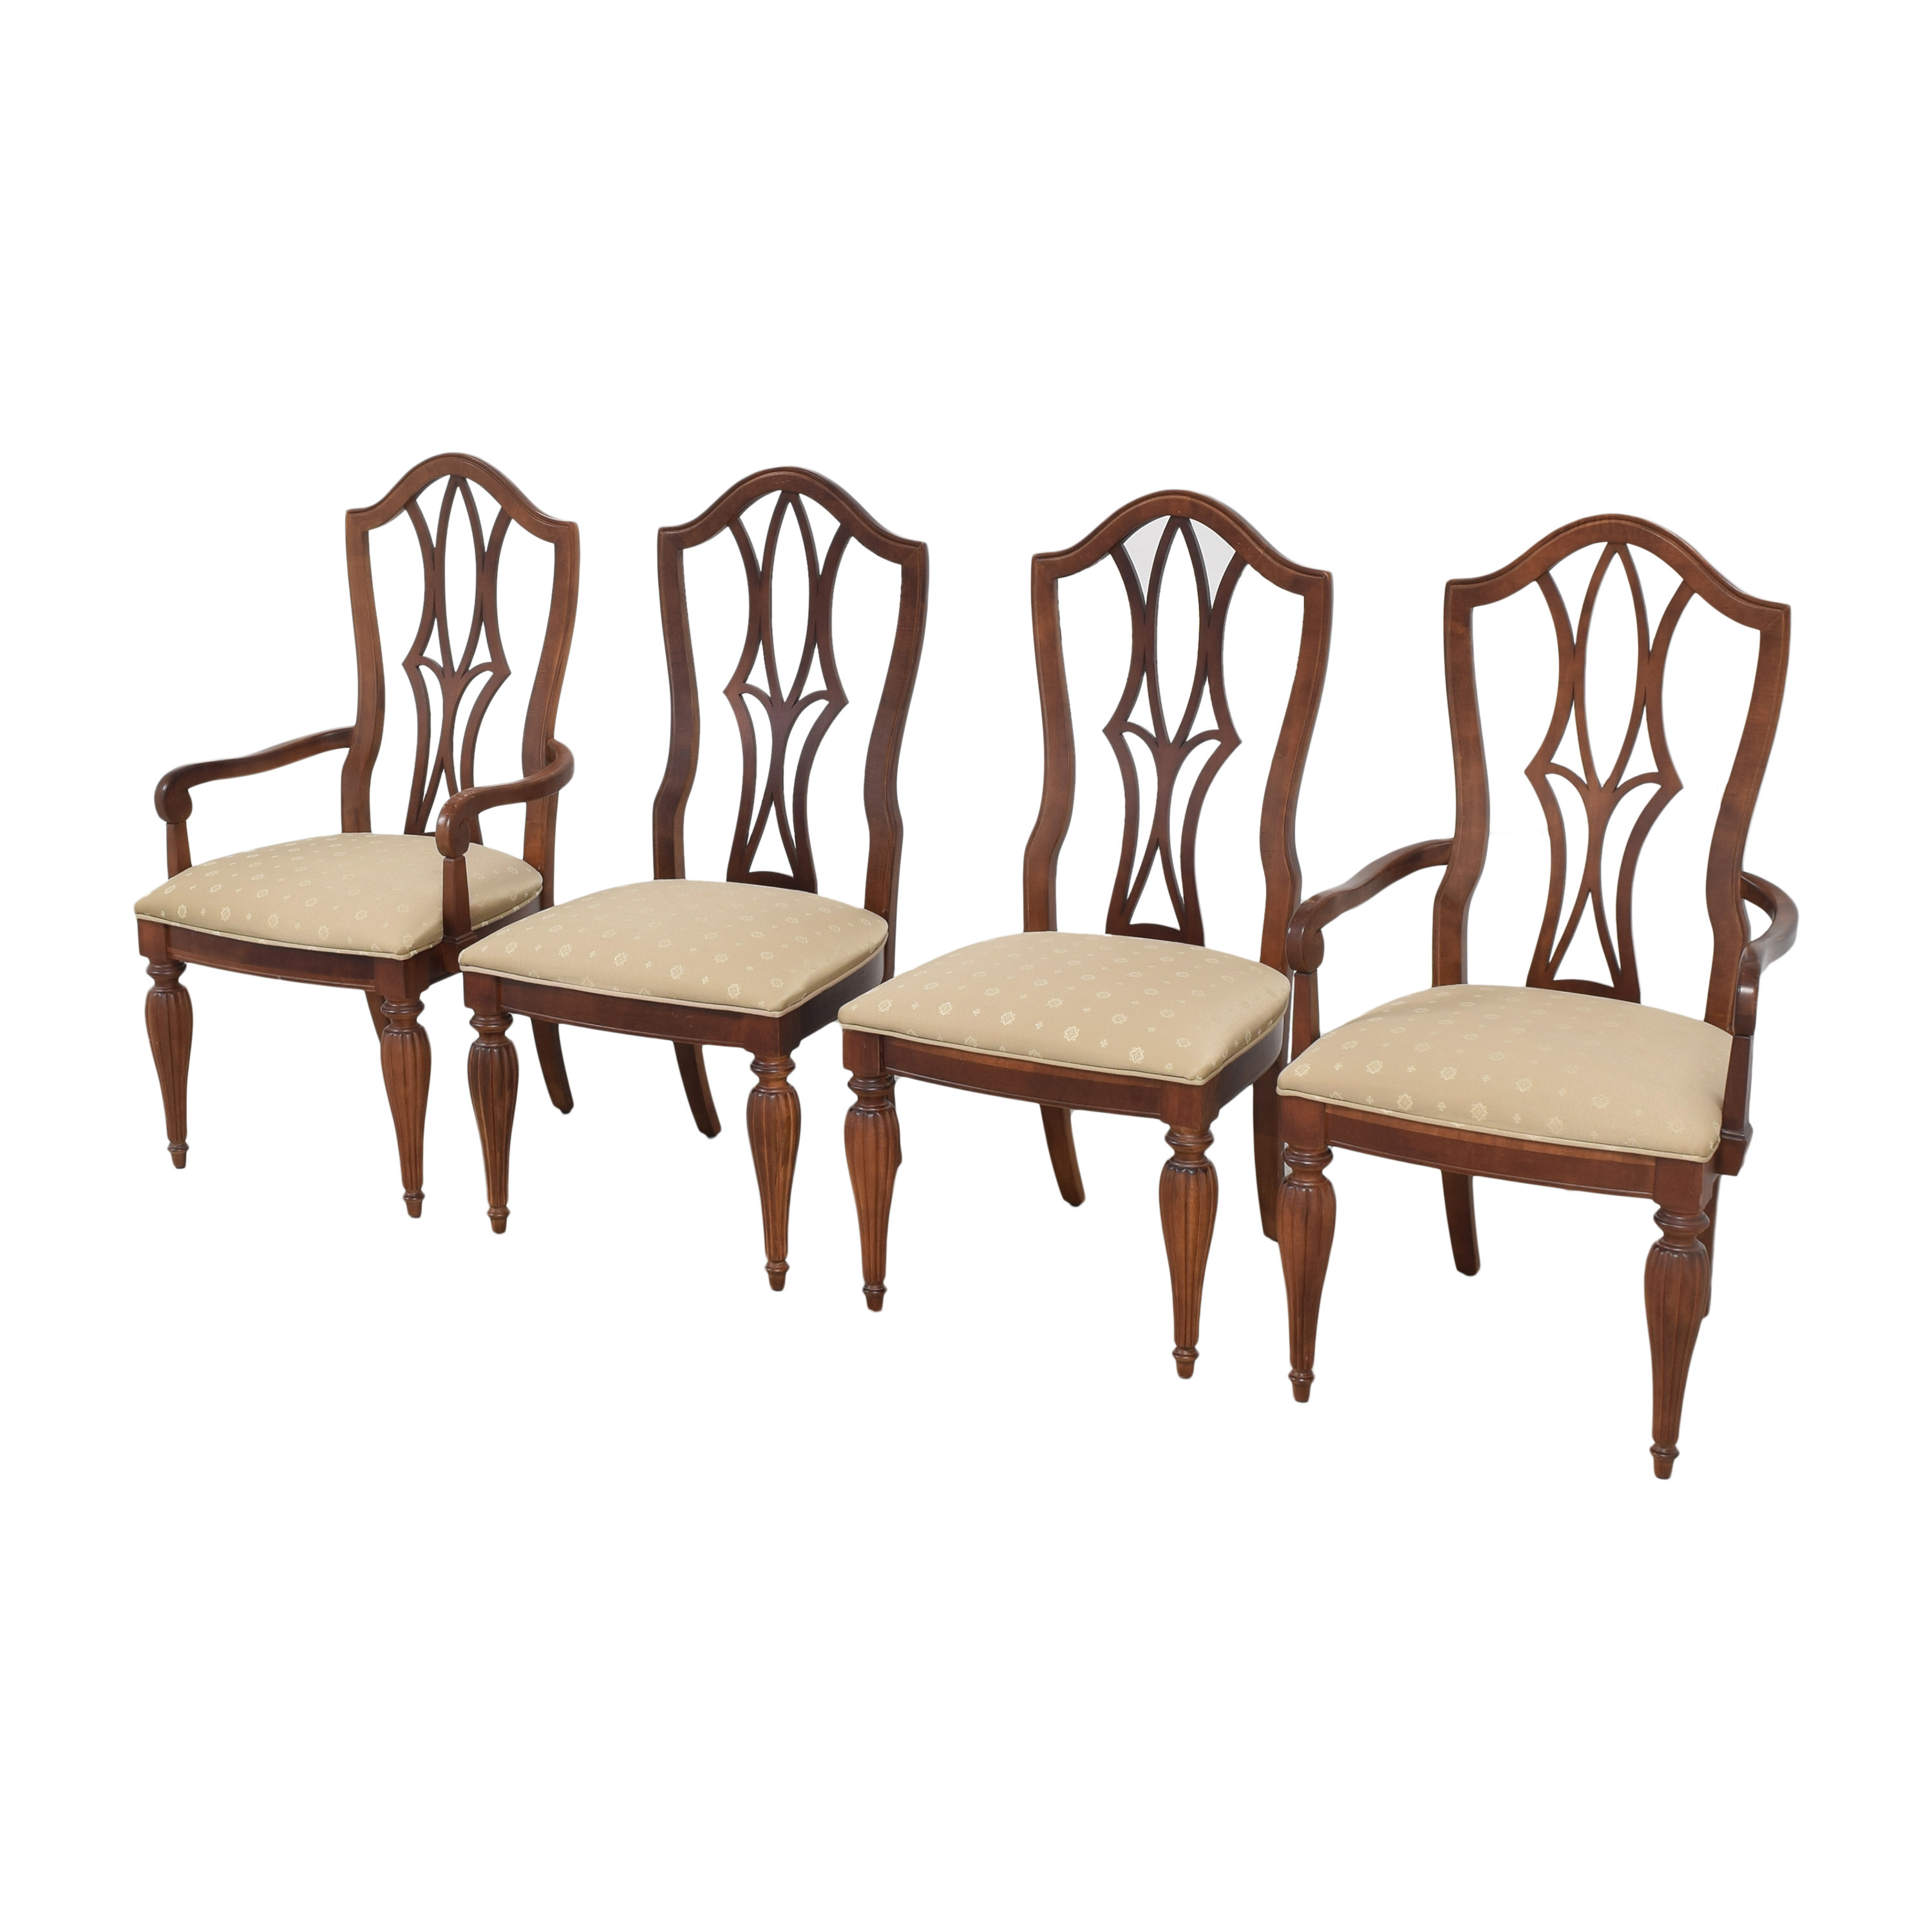 Stanley Furniture Stanley Furniture Upholstered Dining Chairs pa